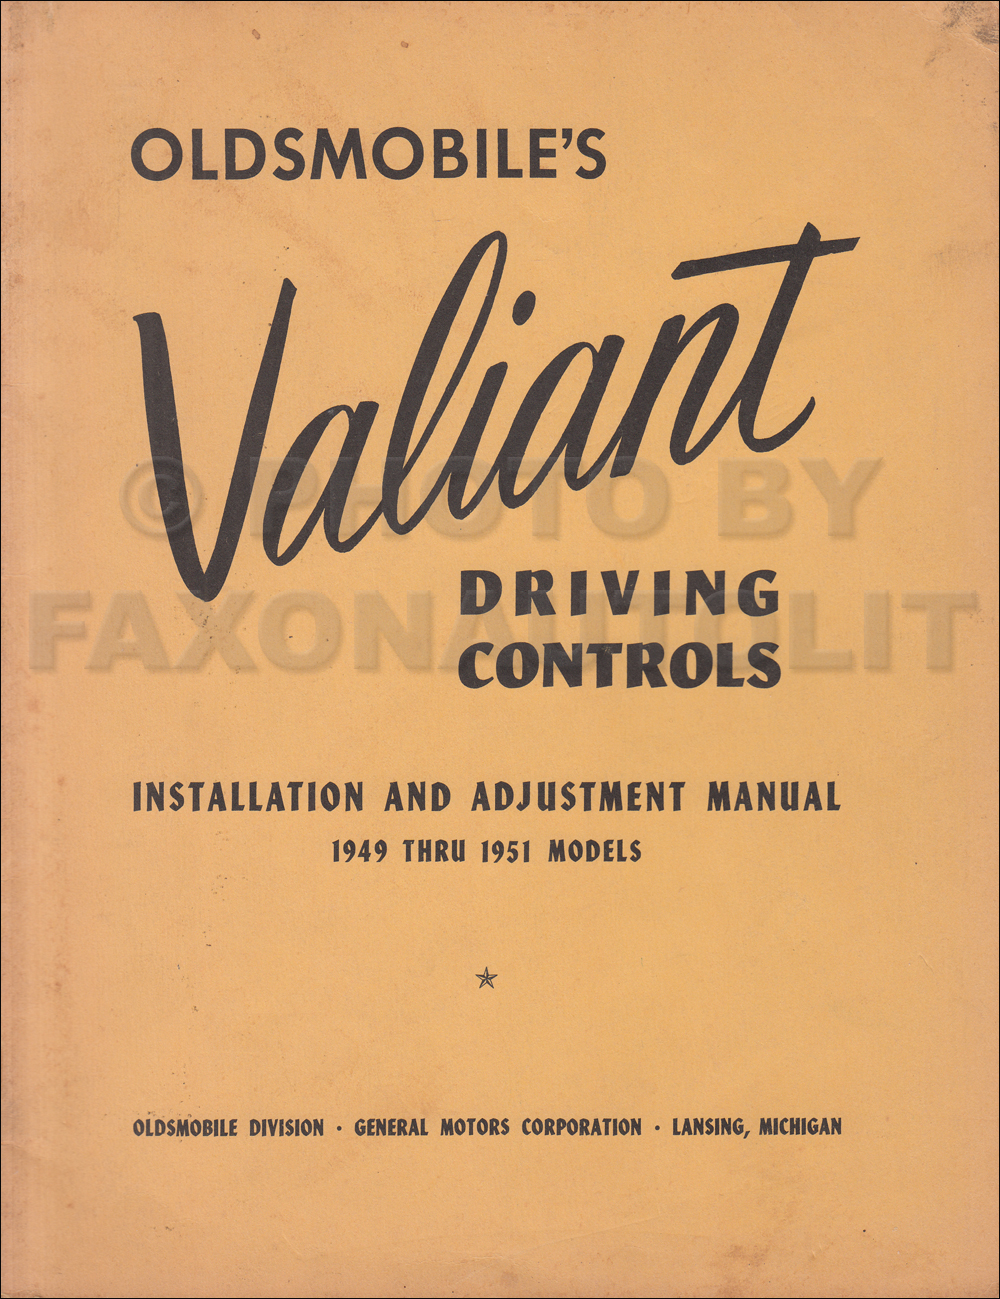 1949-1951 Oldsmobile Valiant Driving Controls Installation and Adjustment Manual Original